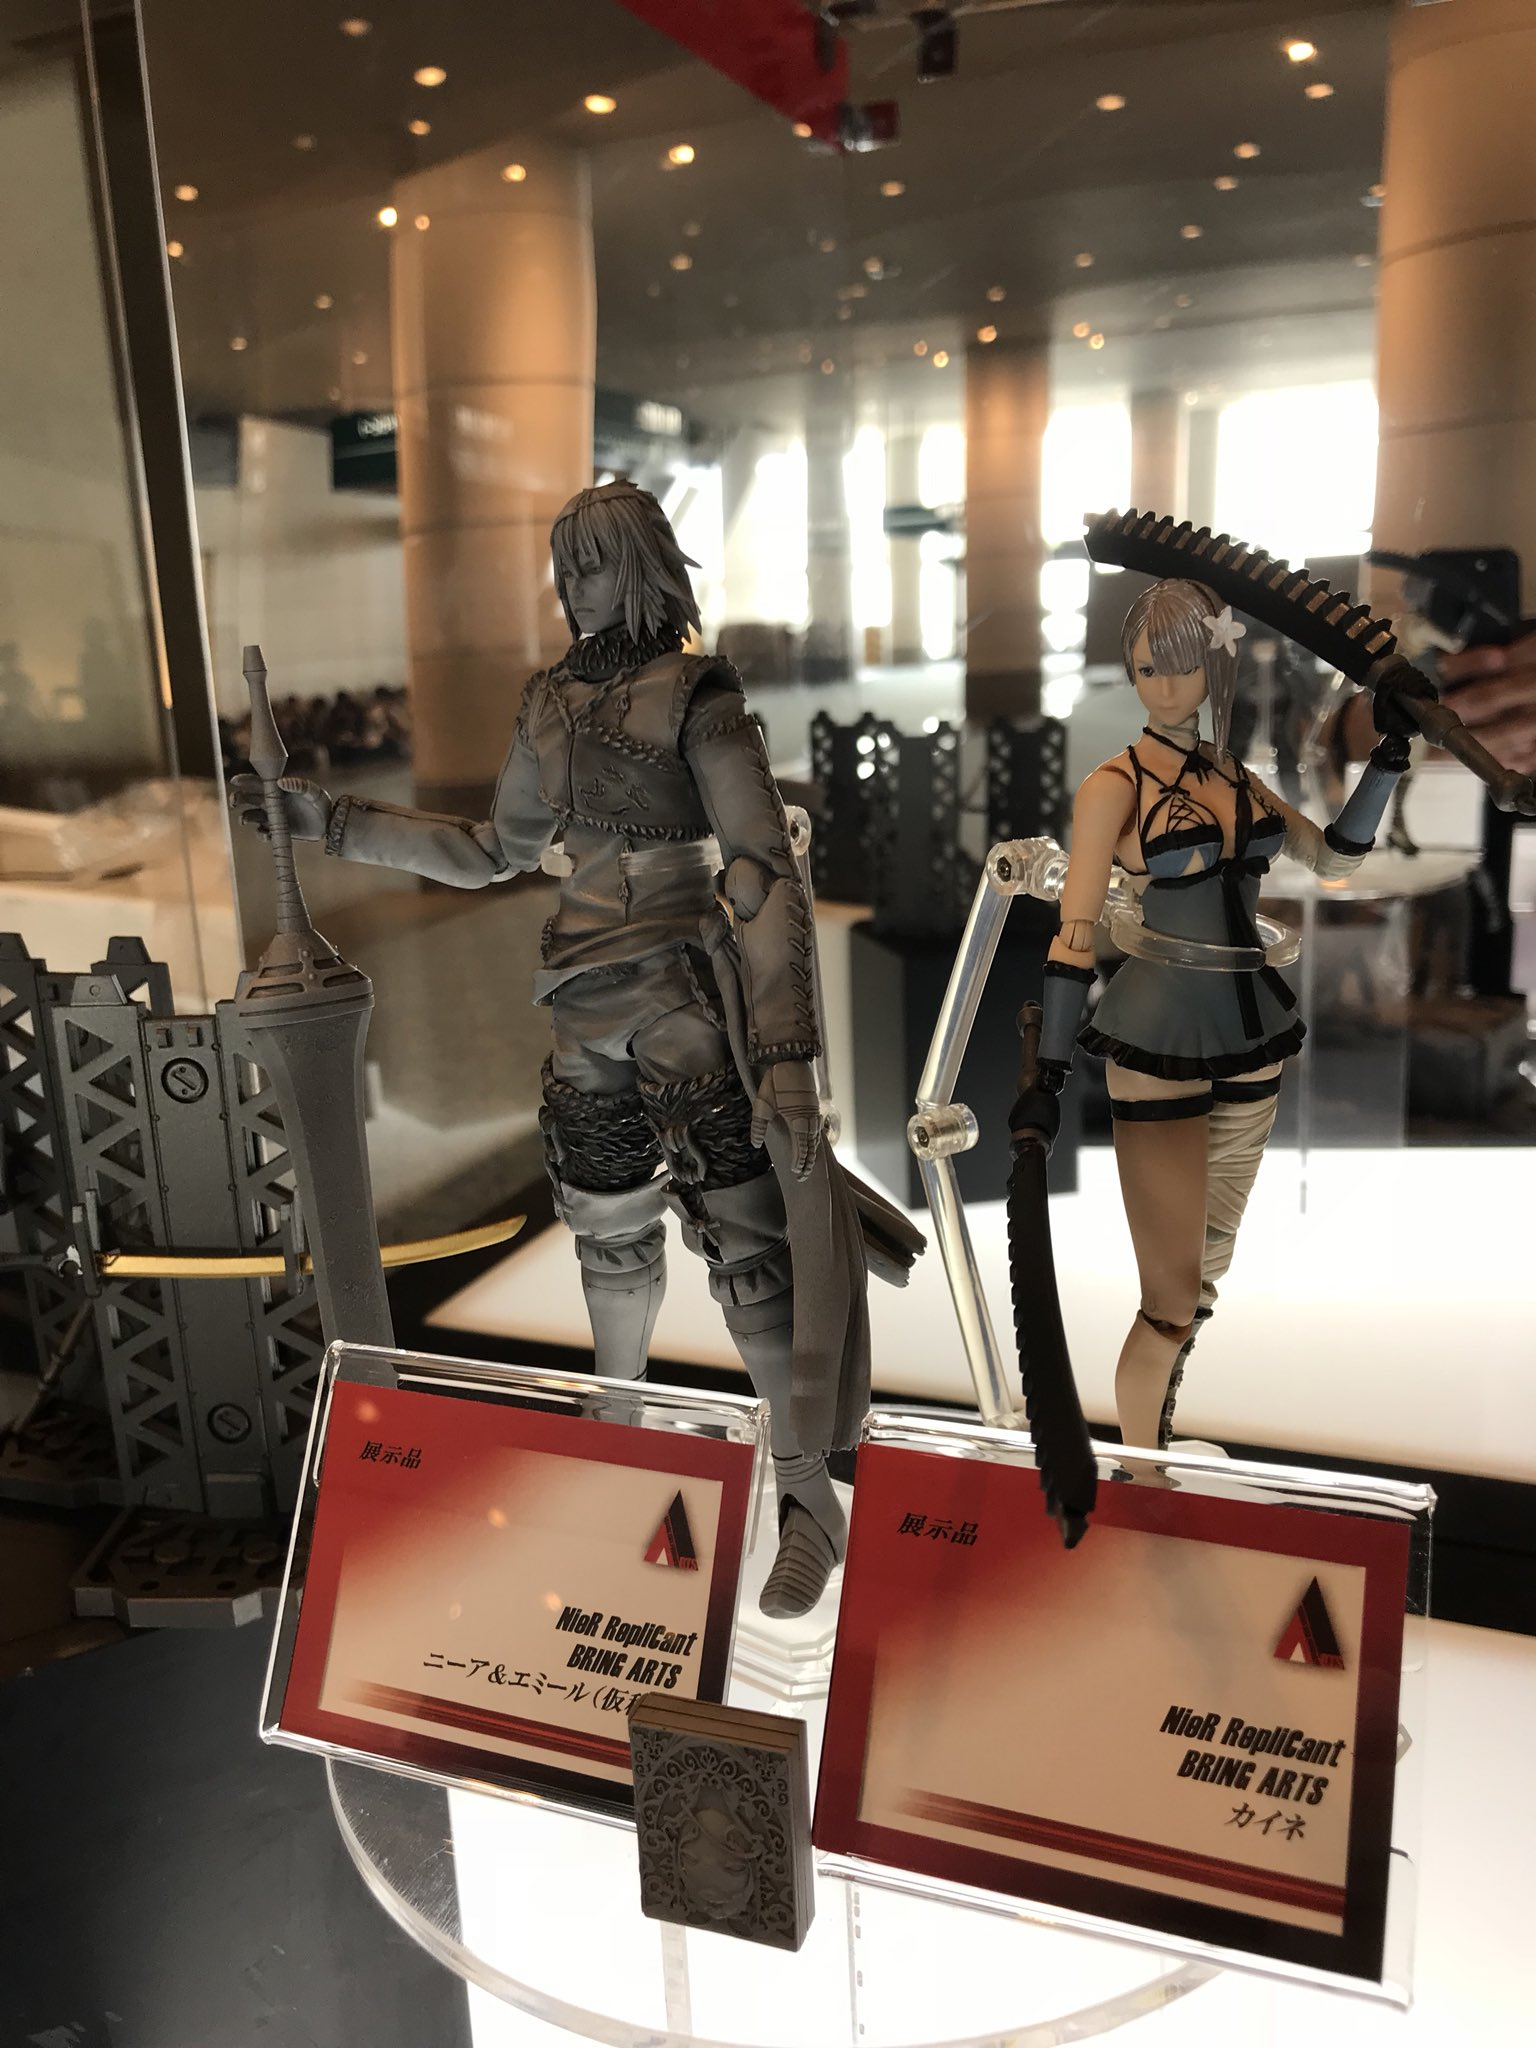 Windows Search Date 2018 09 18 Krezi Kamis 25 Wk Design Tassel Cable Data Ampamp Charging For Lightning Iphone Dan Micro Usb Kabel At An Exhibition In Japan Square Enix Showcased Multiple New Bring Arts 6 Scale Action Figures From The Critically Acclaimed Nierautomata Video Game